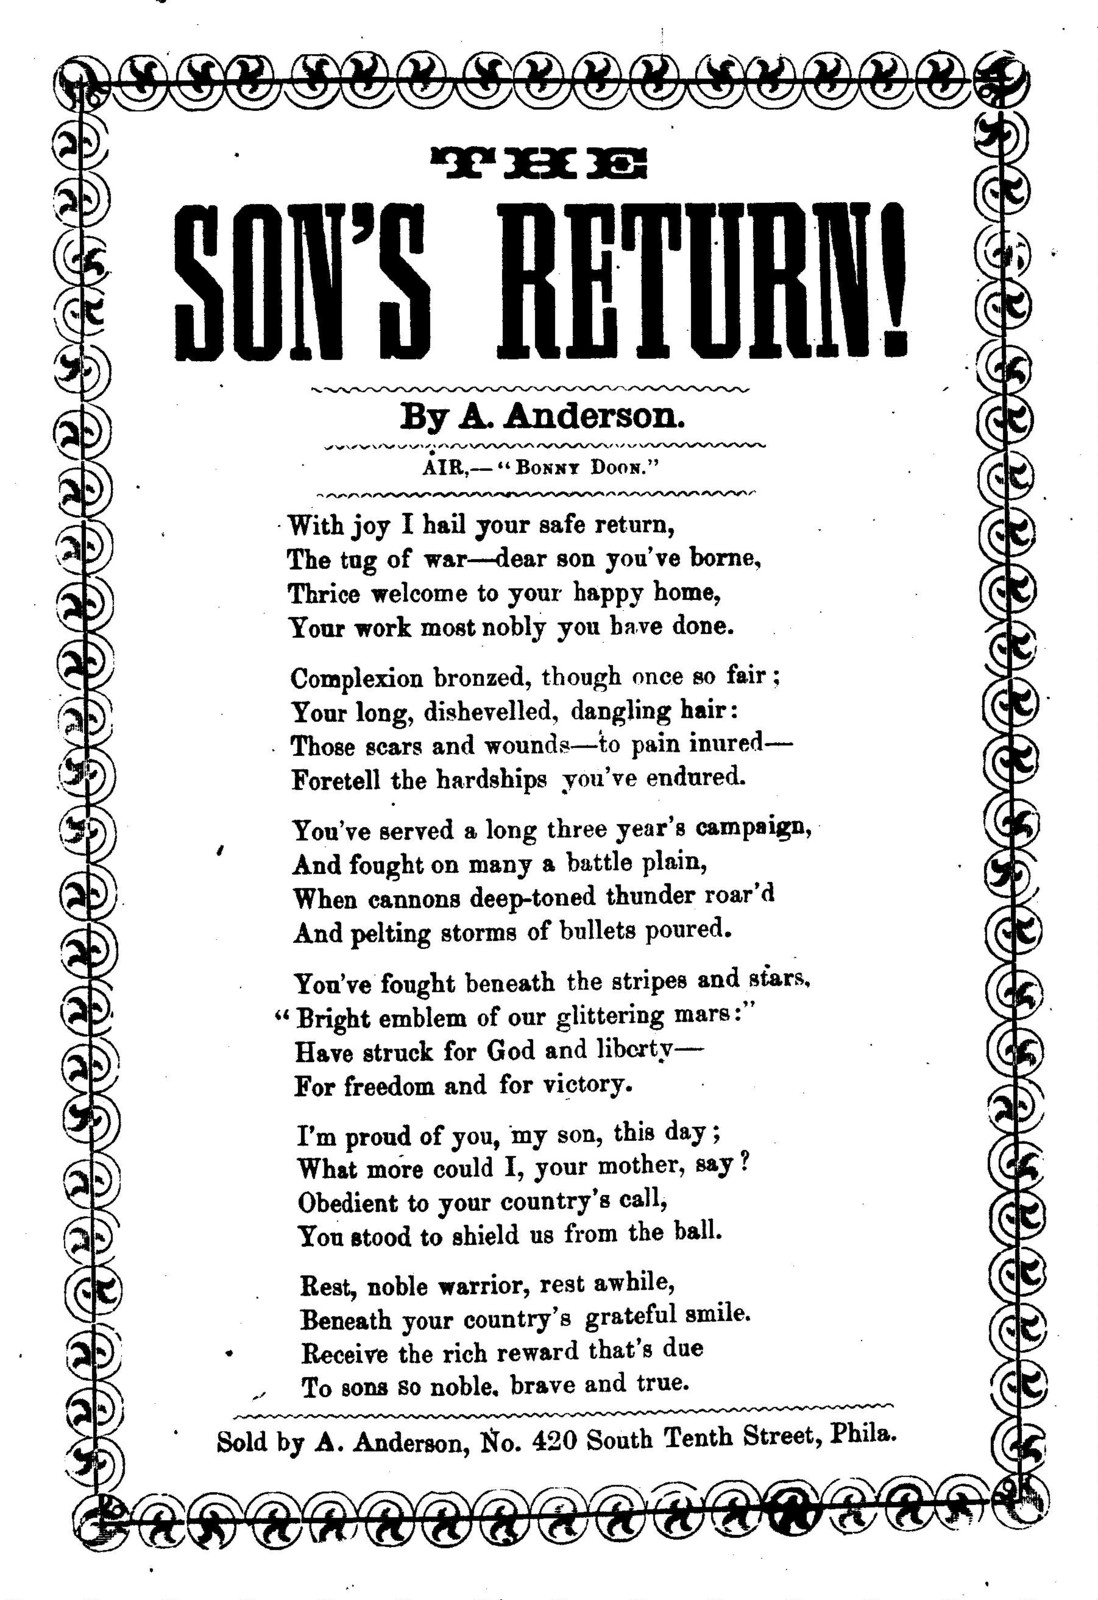 The son's return! By A. Anderson. Sold by A. Anderson, No. 420 South Tenth Street, Phila